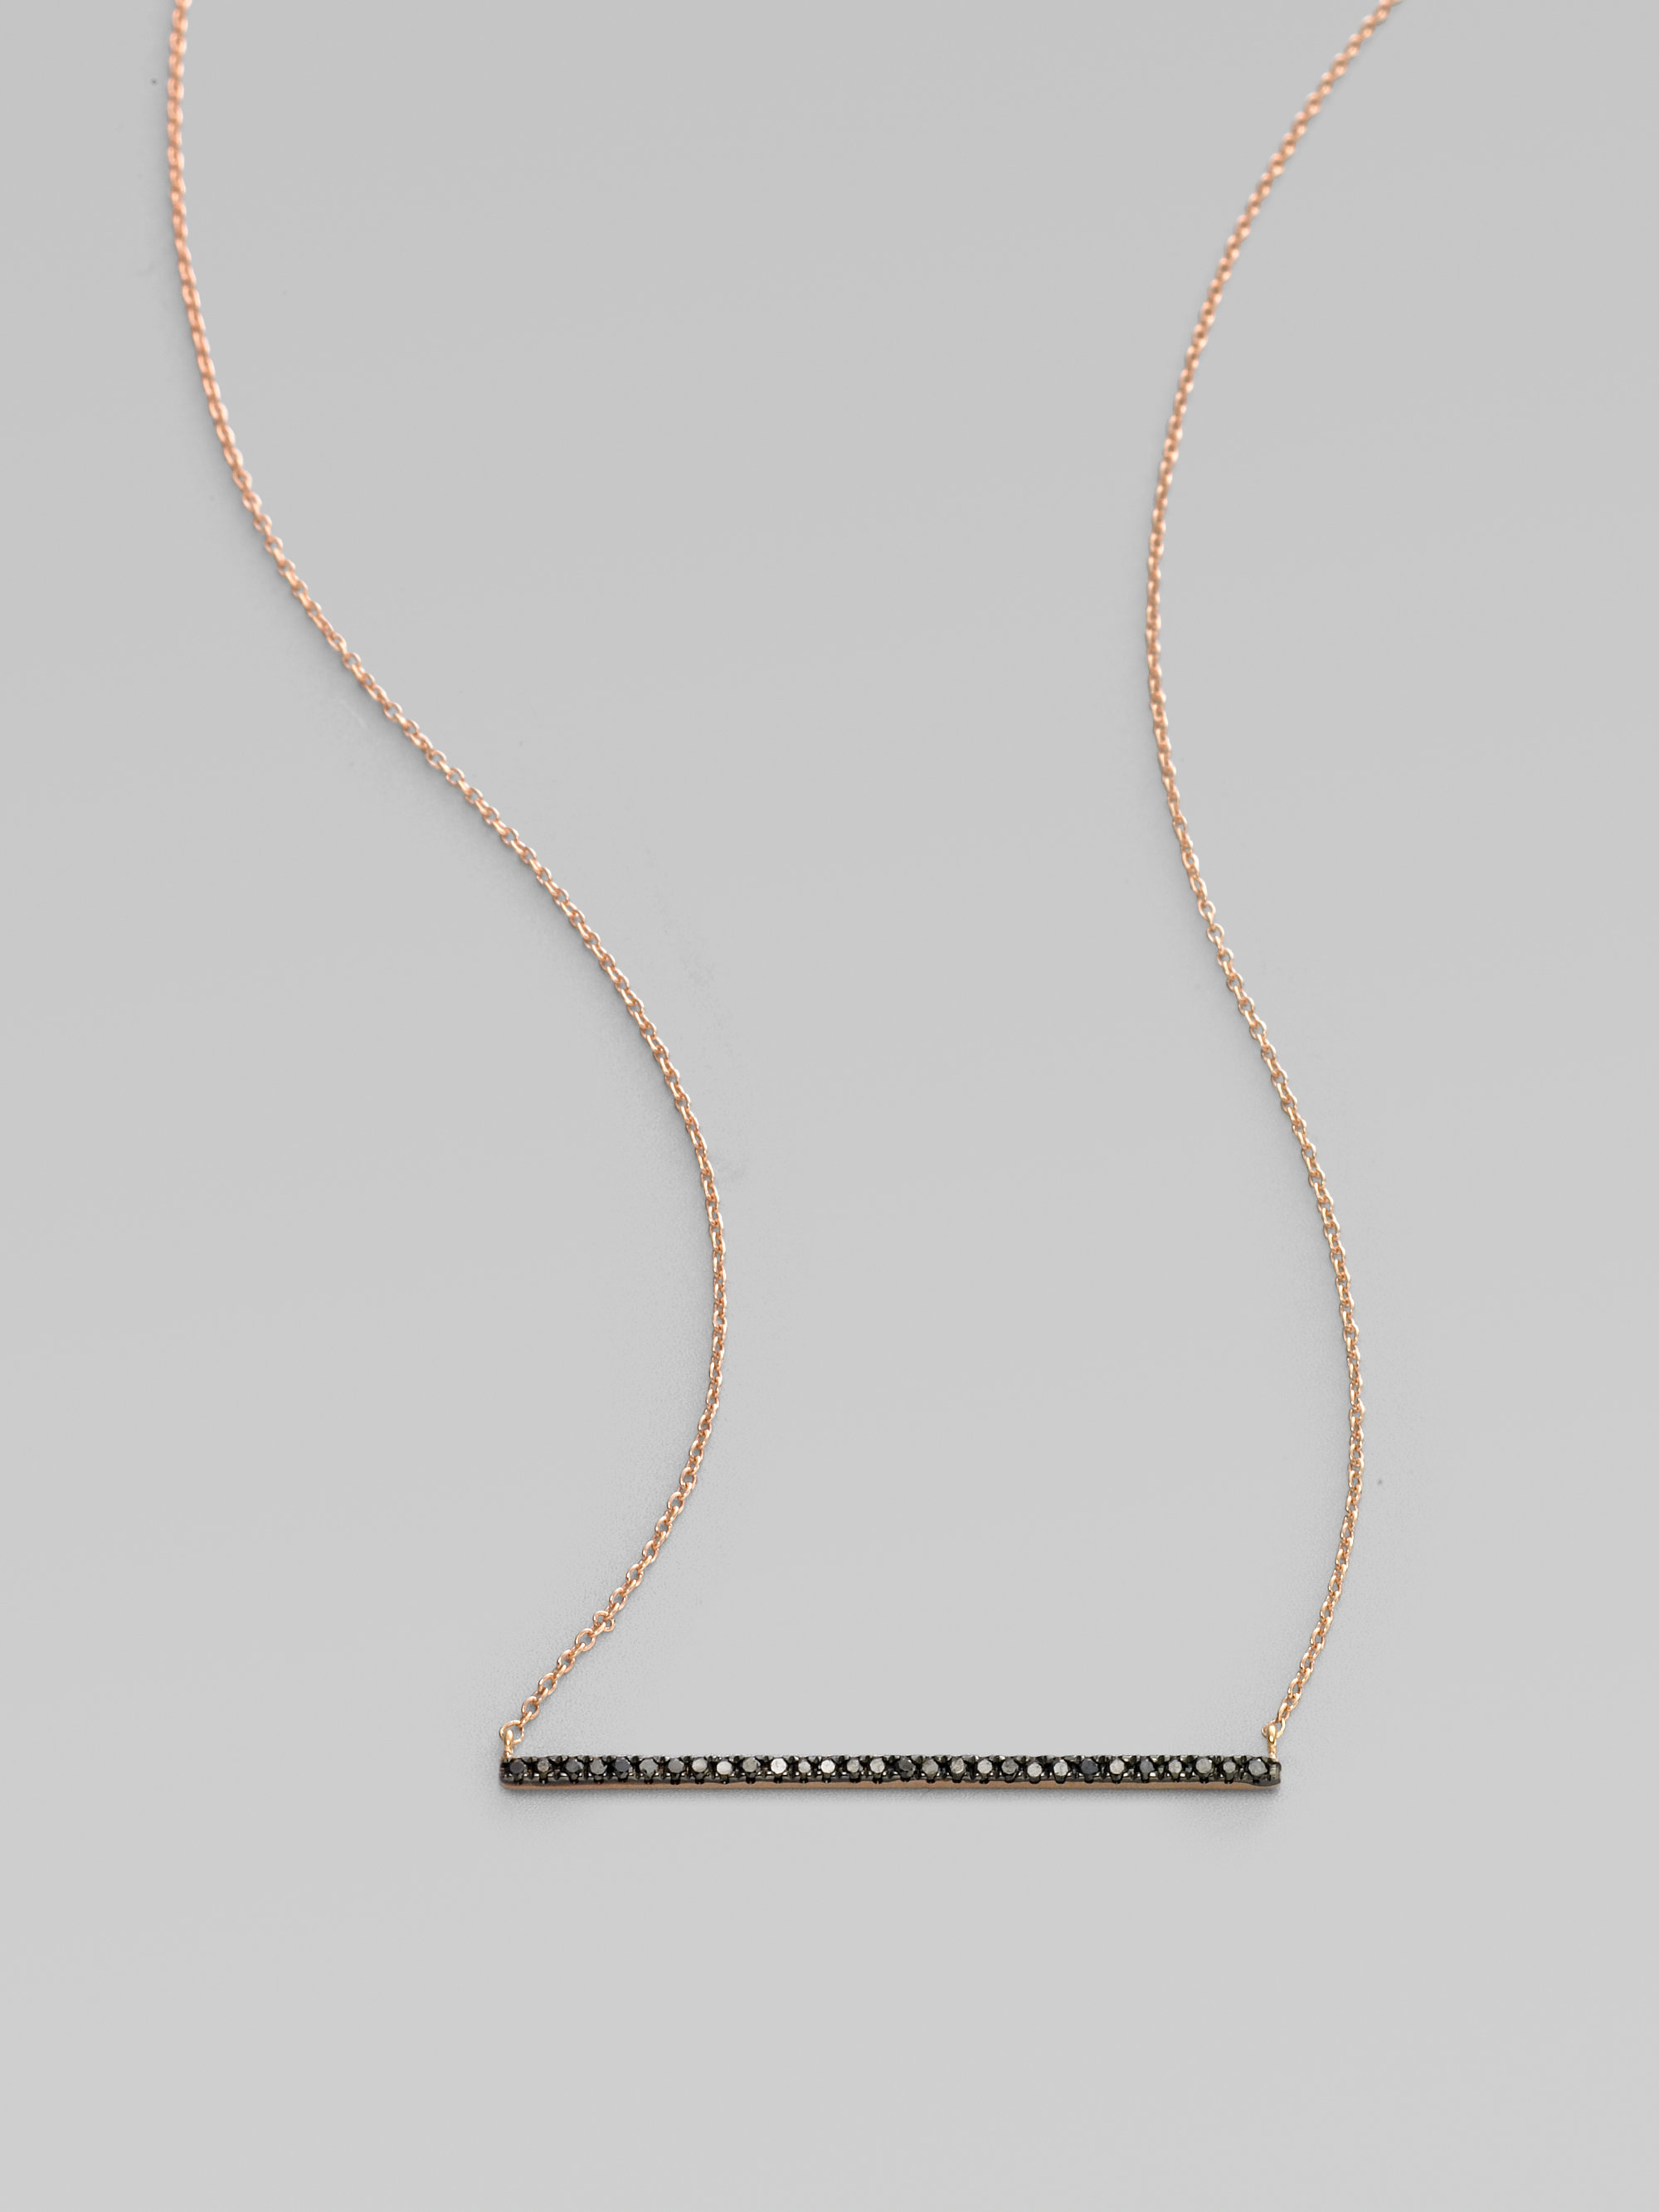 v artikel diamond schmuckwerk independent necklace schwarze small de rohdiamant ketten shop black